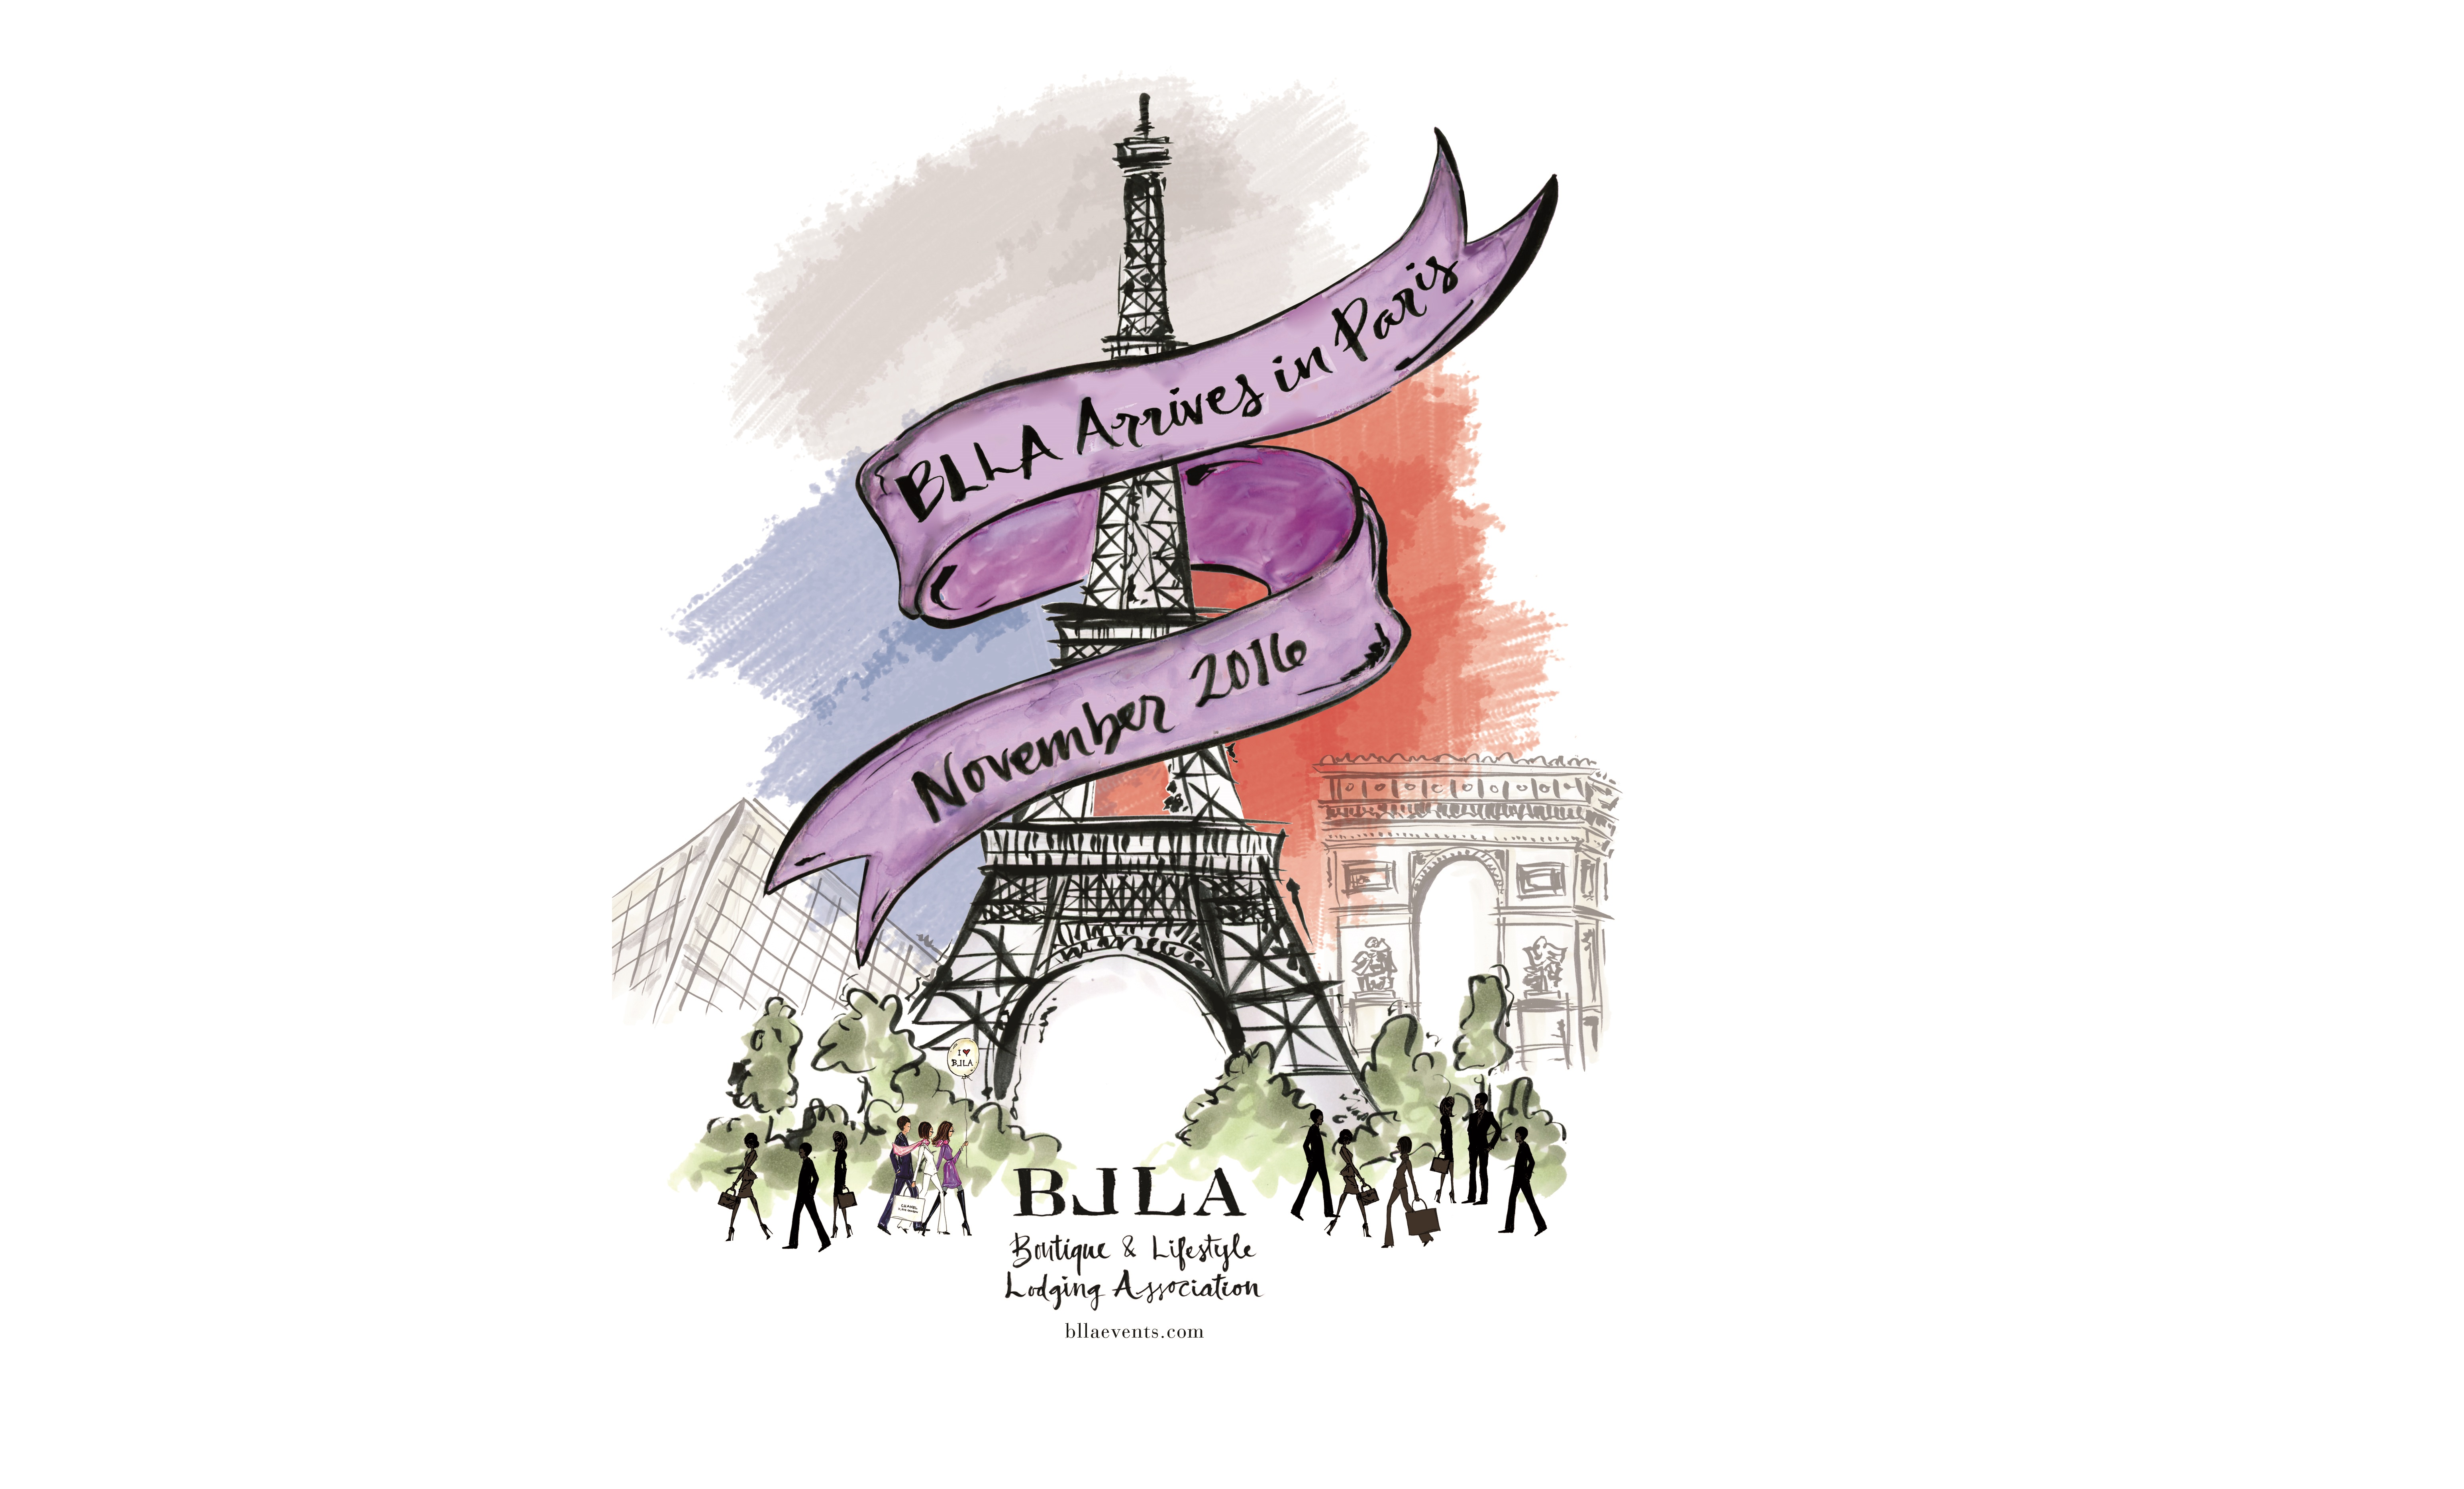 Boutique & Lifestyle Lodging Association To Hold First Ever Paris Conference at EquipHotel Trade Show